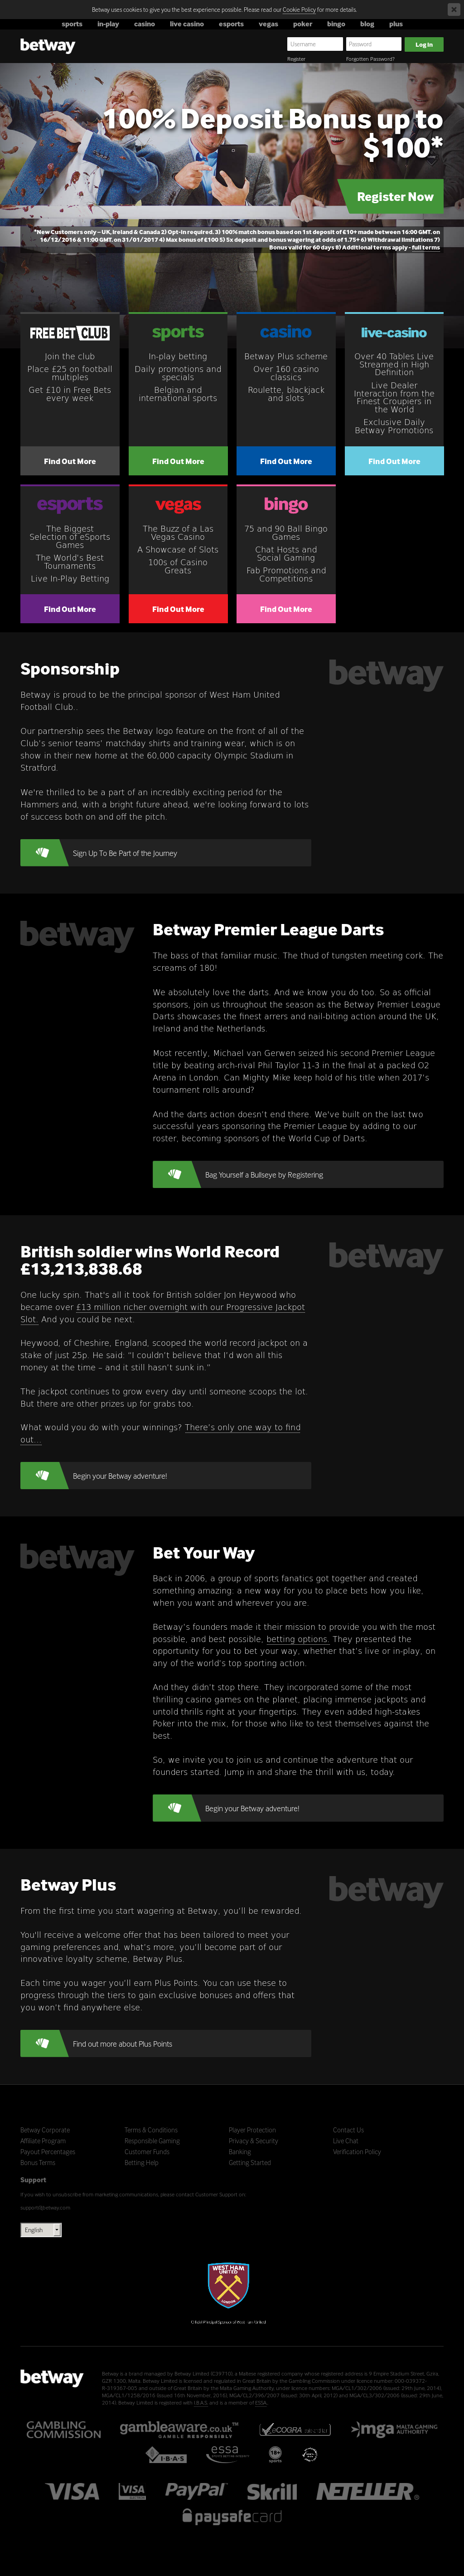 Betway Competitors, Revenue and Employees - Owler Company